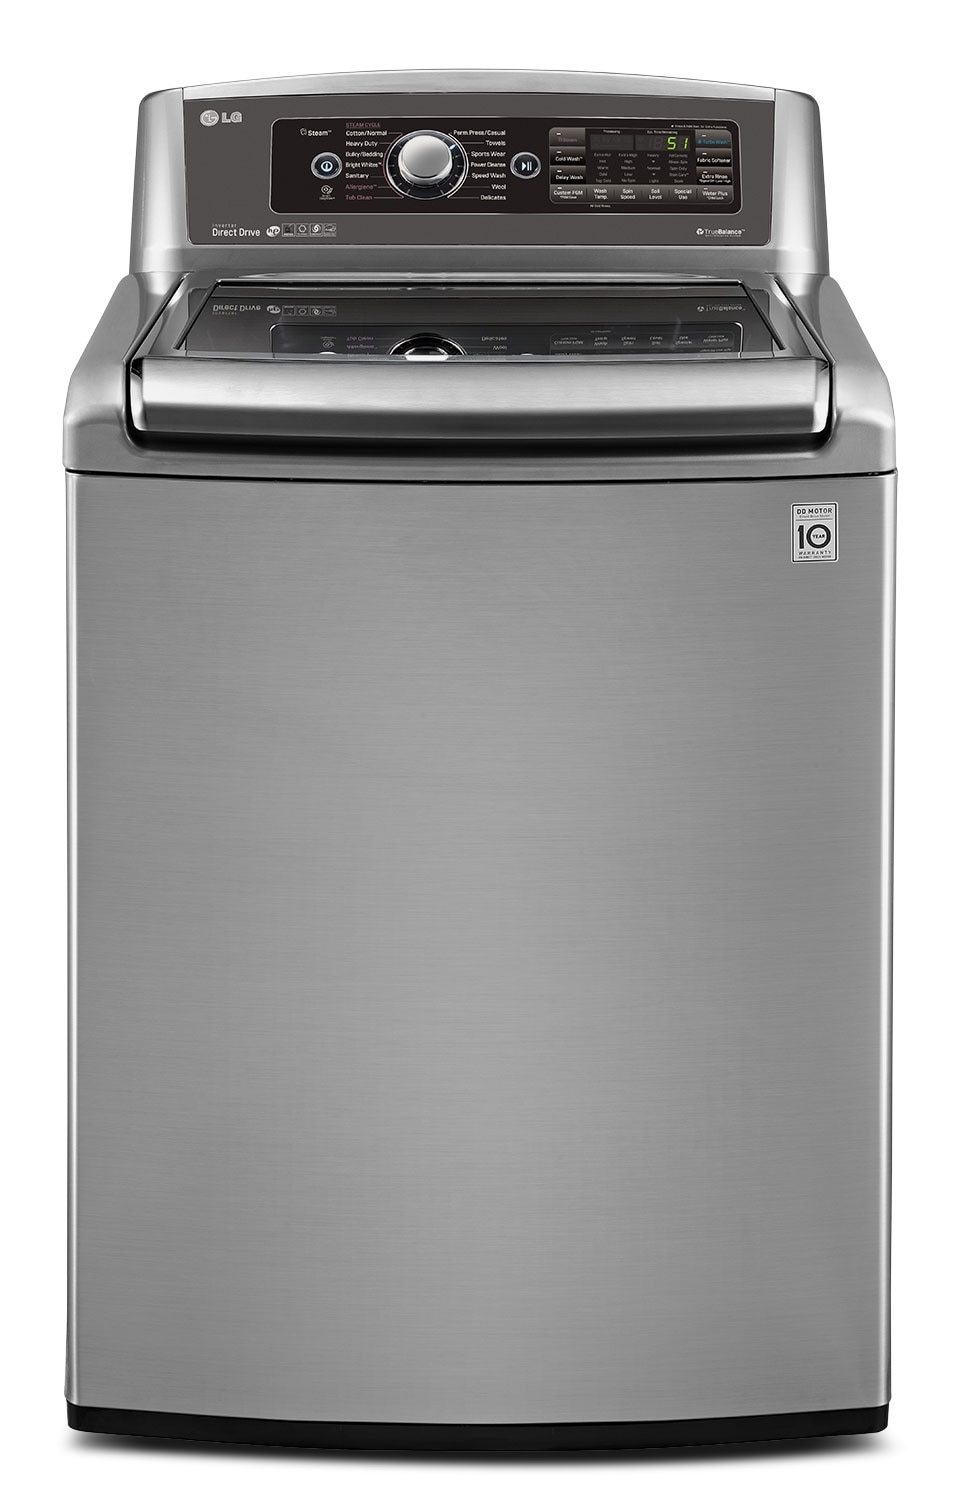 Maytag Graphite Steel Top-Load Washer (6.1 Cu. Ft.) - WT5680HVA